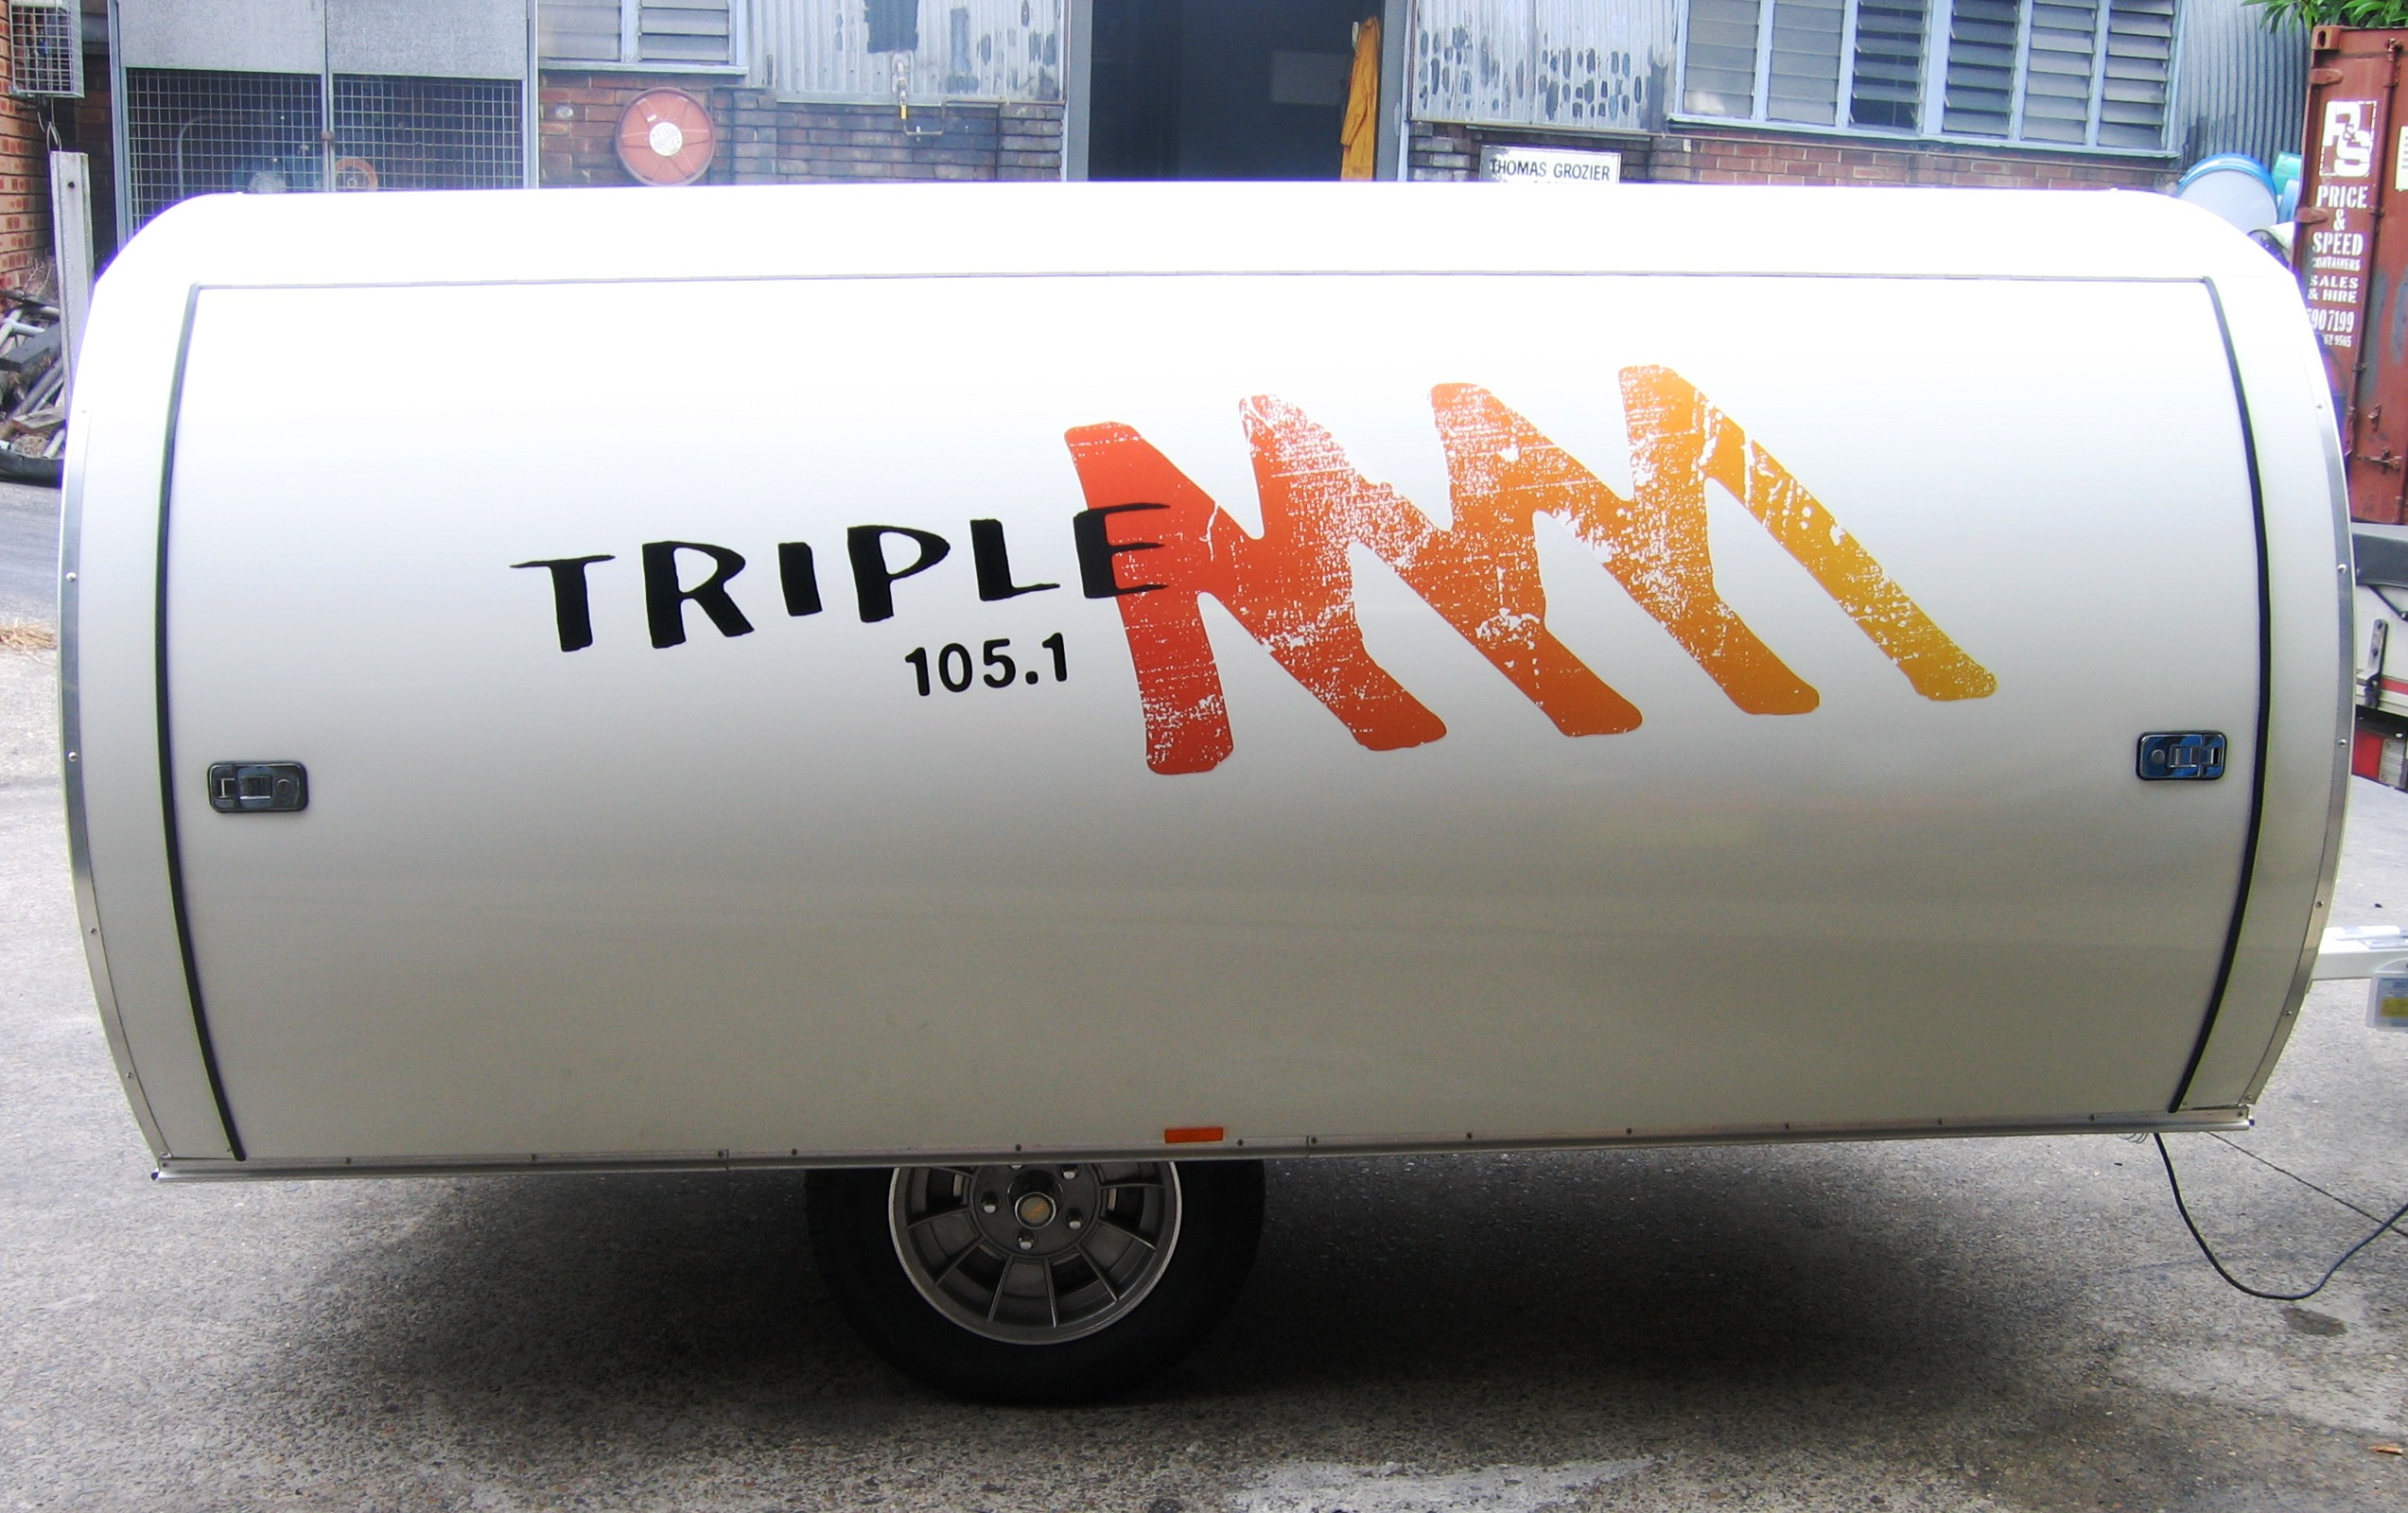 Fleet graphics. Triple M Austereo Melbourne trailer. Radio station promotions.